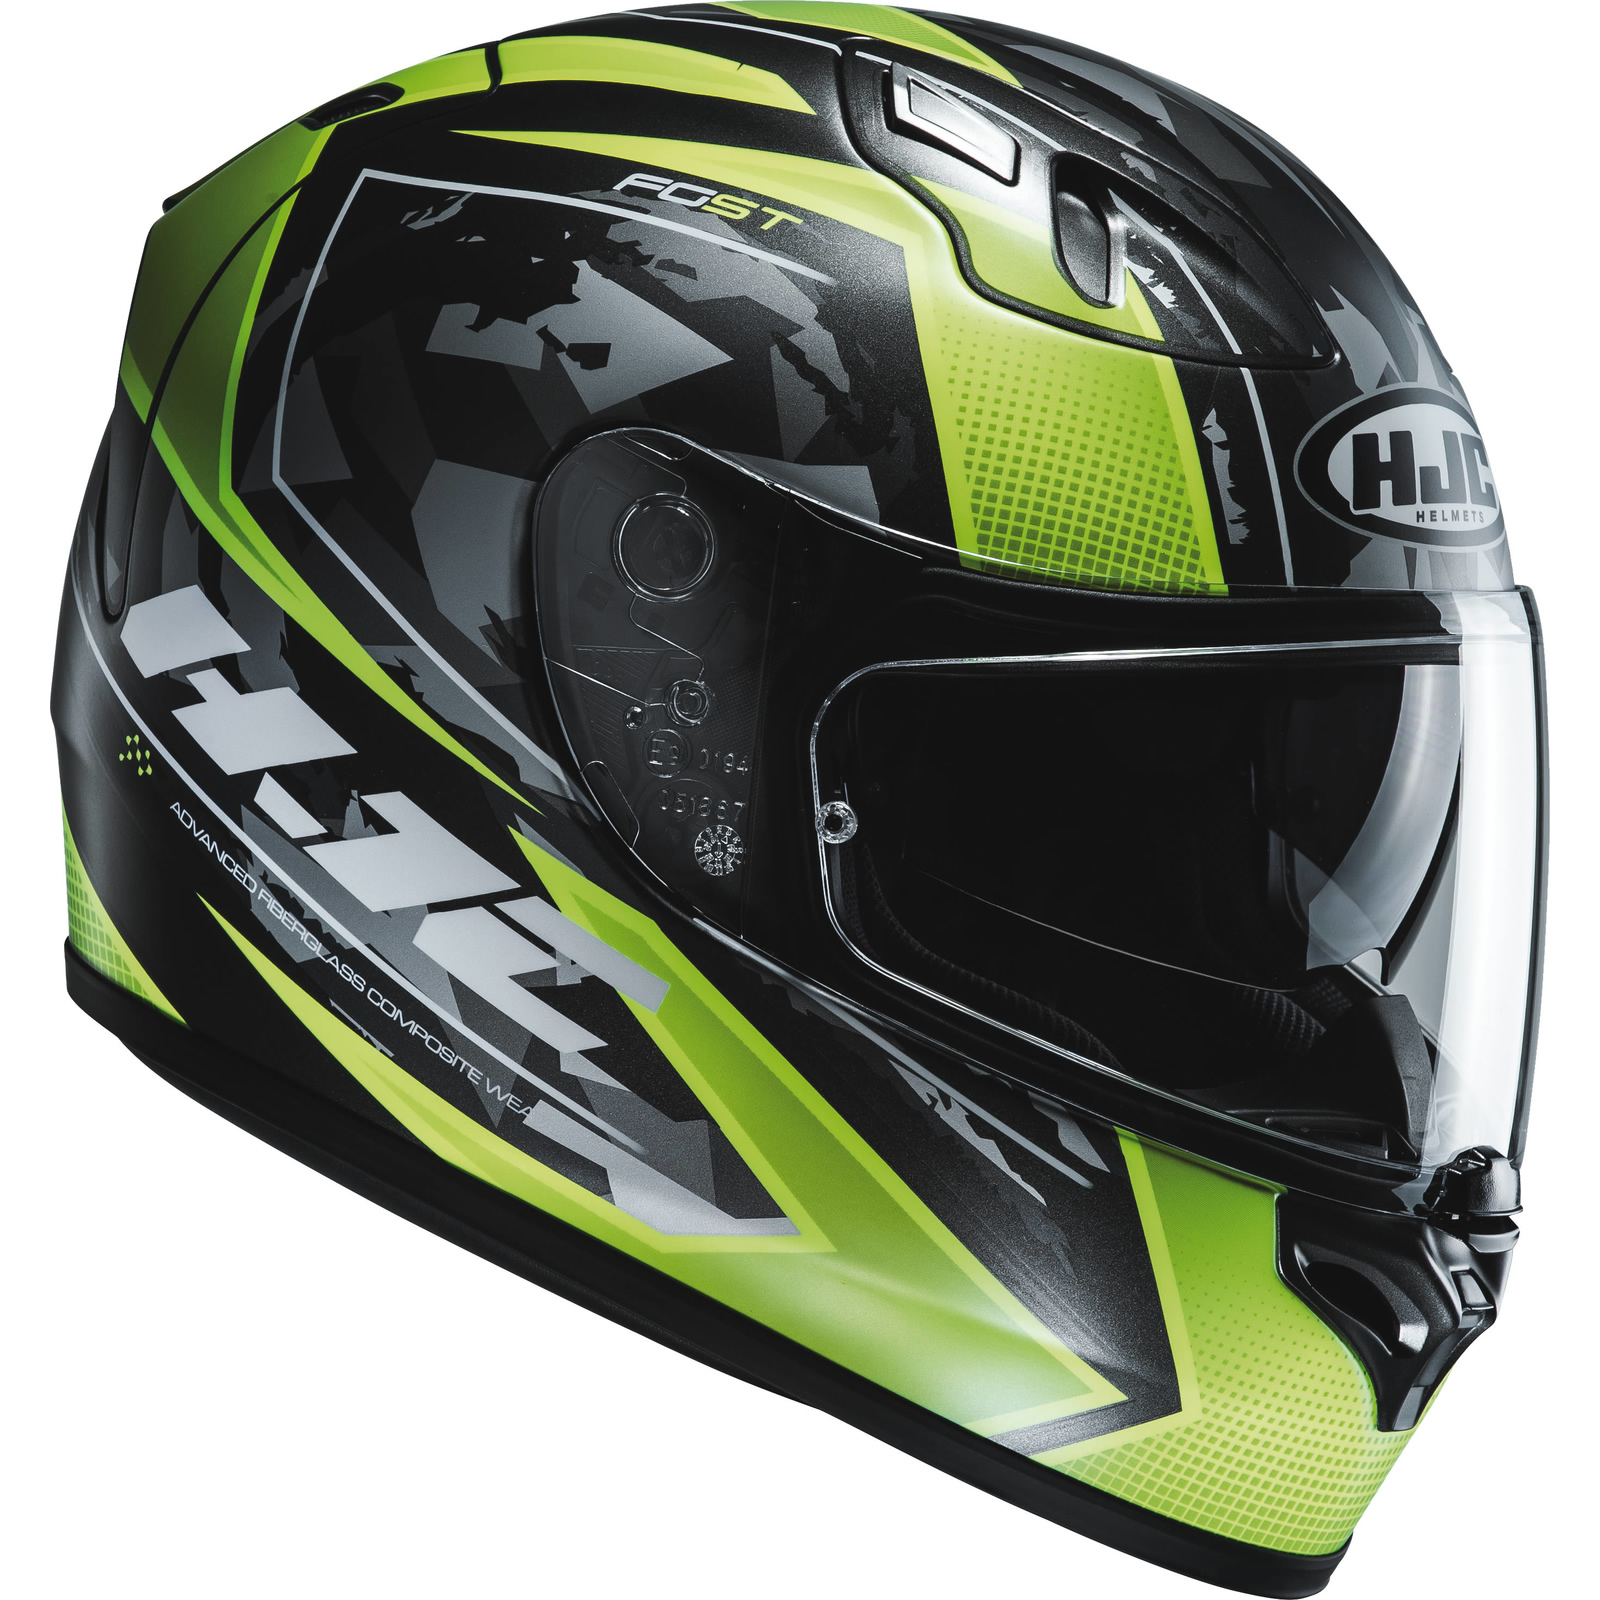 hjc fg st kume motorcycle helmet visor motorbike acu full face racing sharp ebay. Black Bedroom Furniture Sets. Home Design Ideas